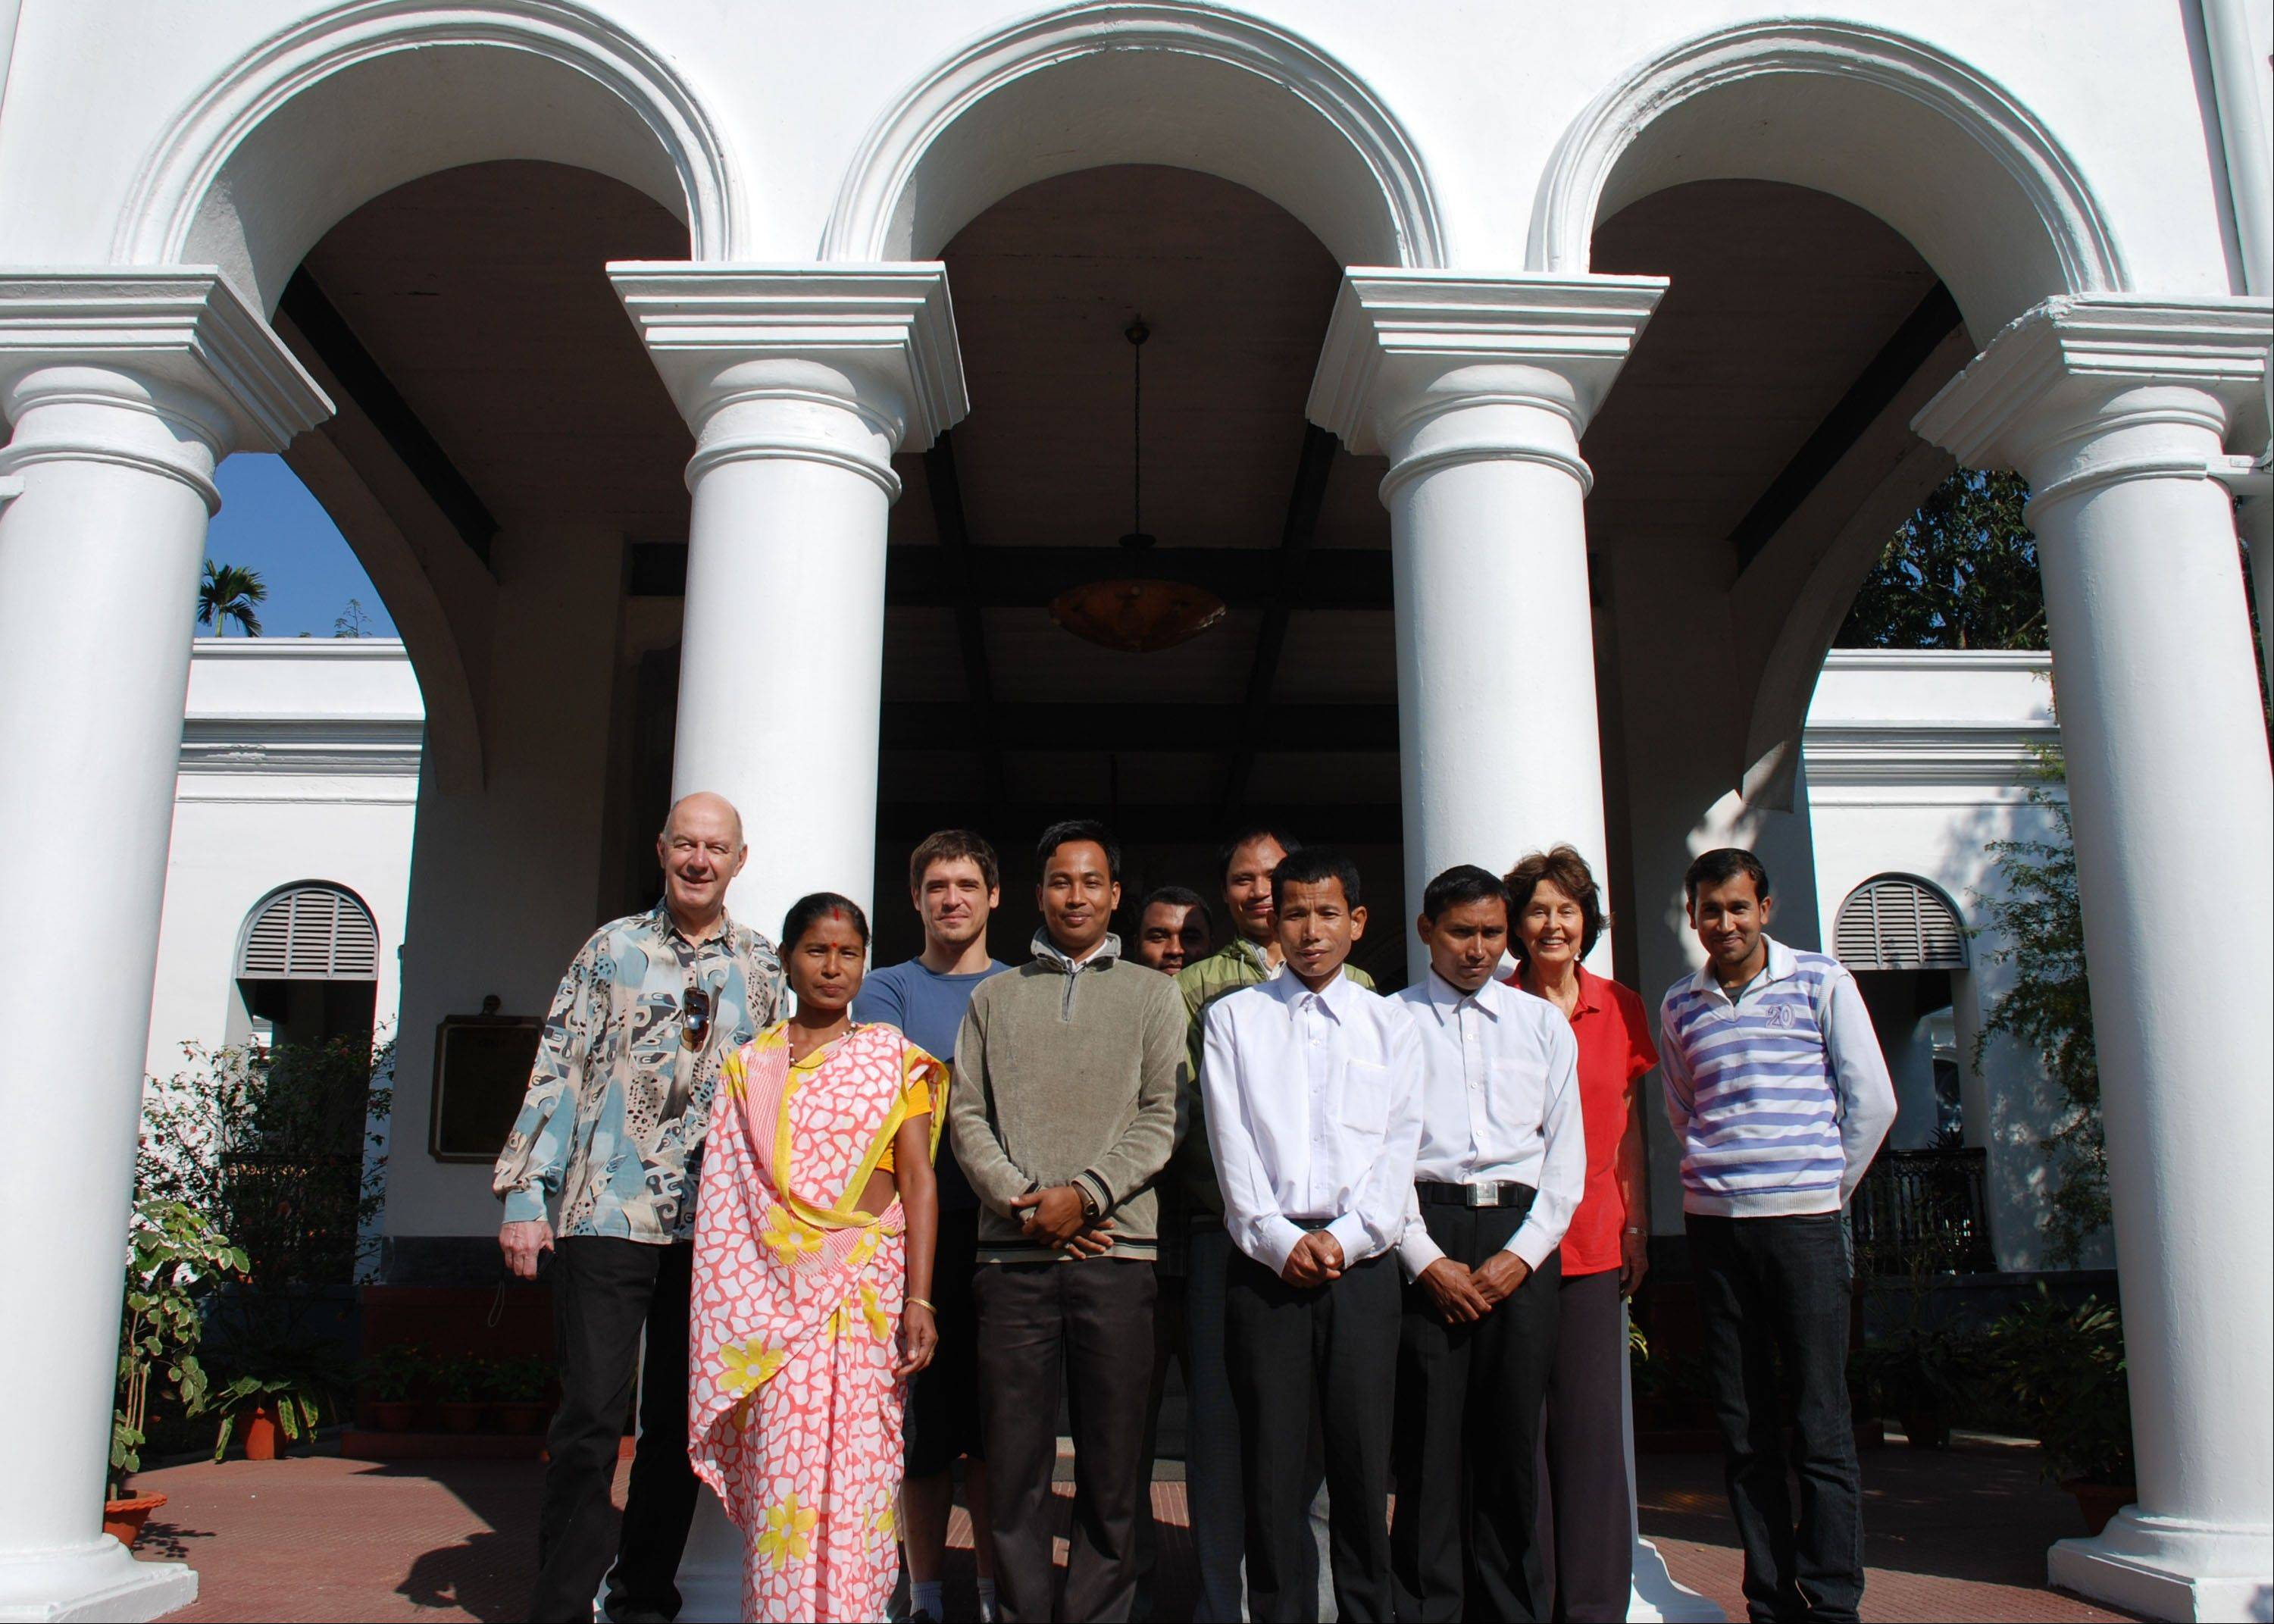 Guests and staff members poised at the entrance of Thengal Manor, gracious home of the Barooah tea dynasty, which is now open to tourists in Jorhat, India.